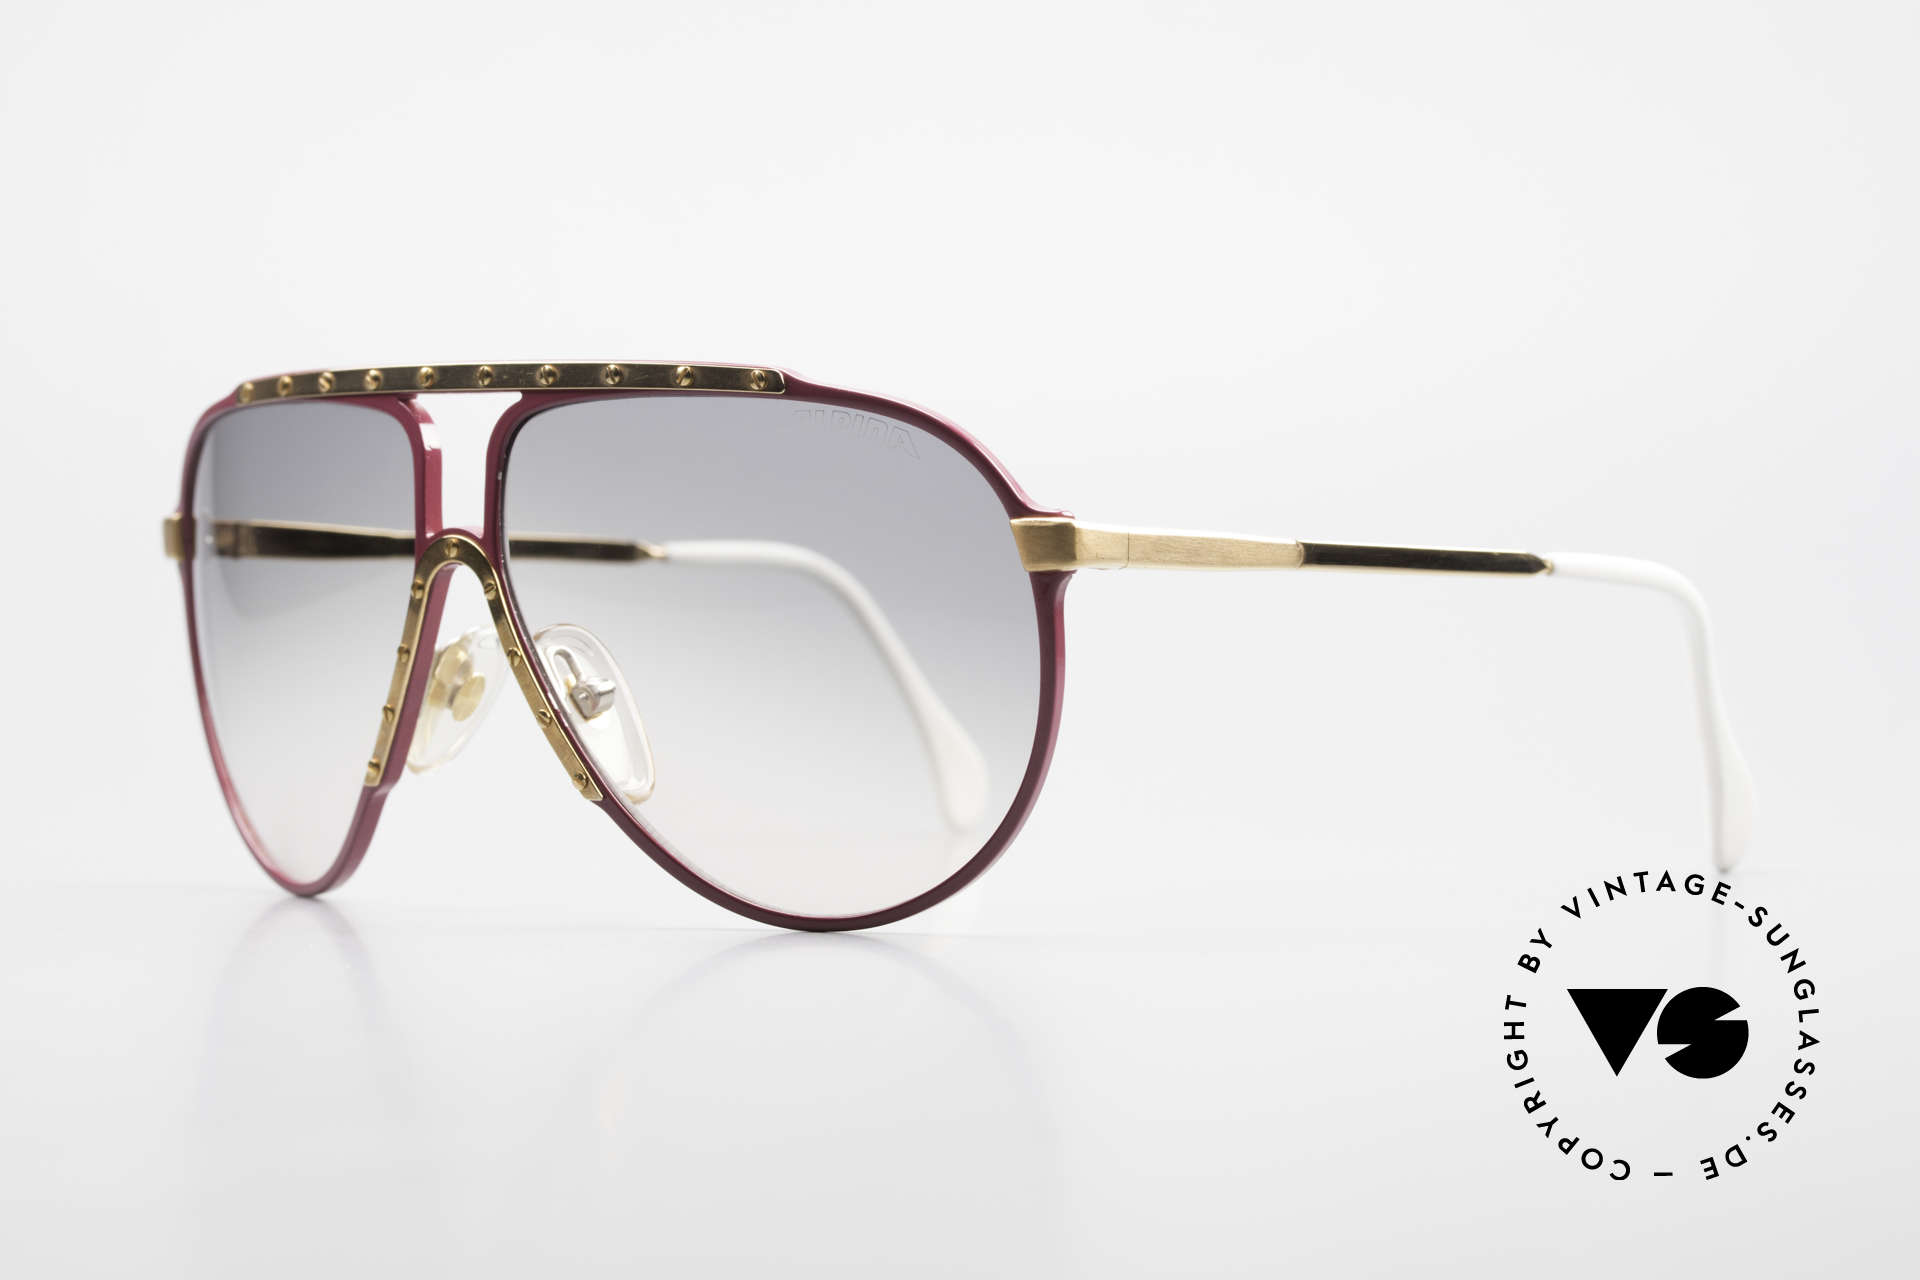 Alpina M1 Iconic Vintage Sunglasses 80s, sought-after collector's item: pink / GOLD-plated, Made for Women